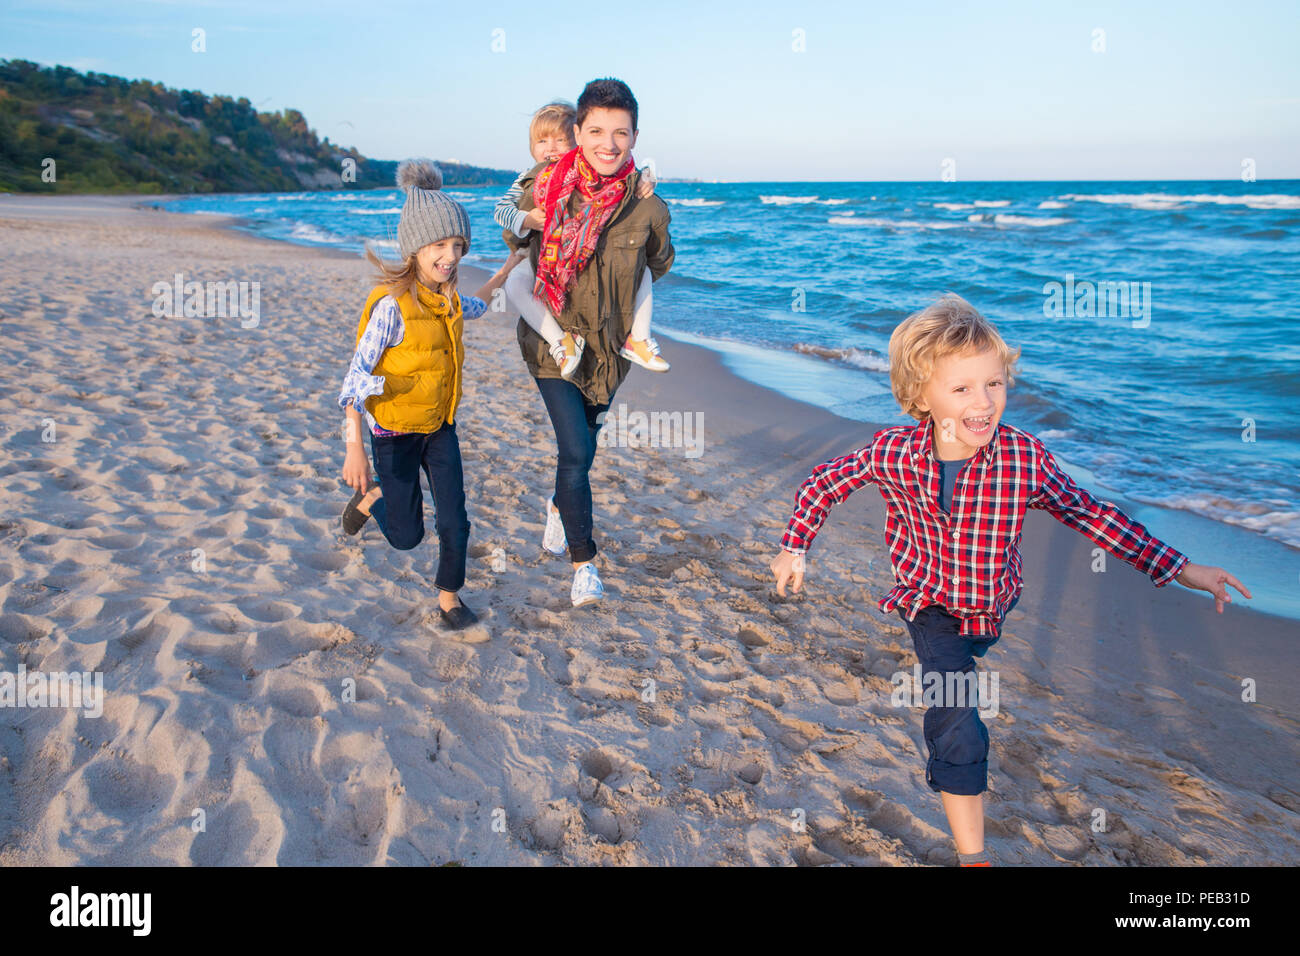 Group portrait of three funny smiling laughing white Caucasian children kids with mother running on ocean sea beach at sunset outdoors, happy lifestyl - Stock Image